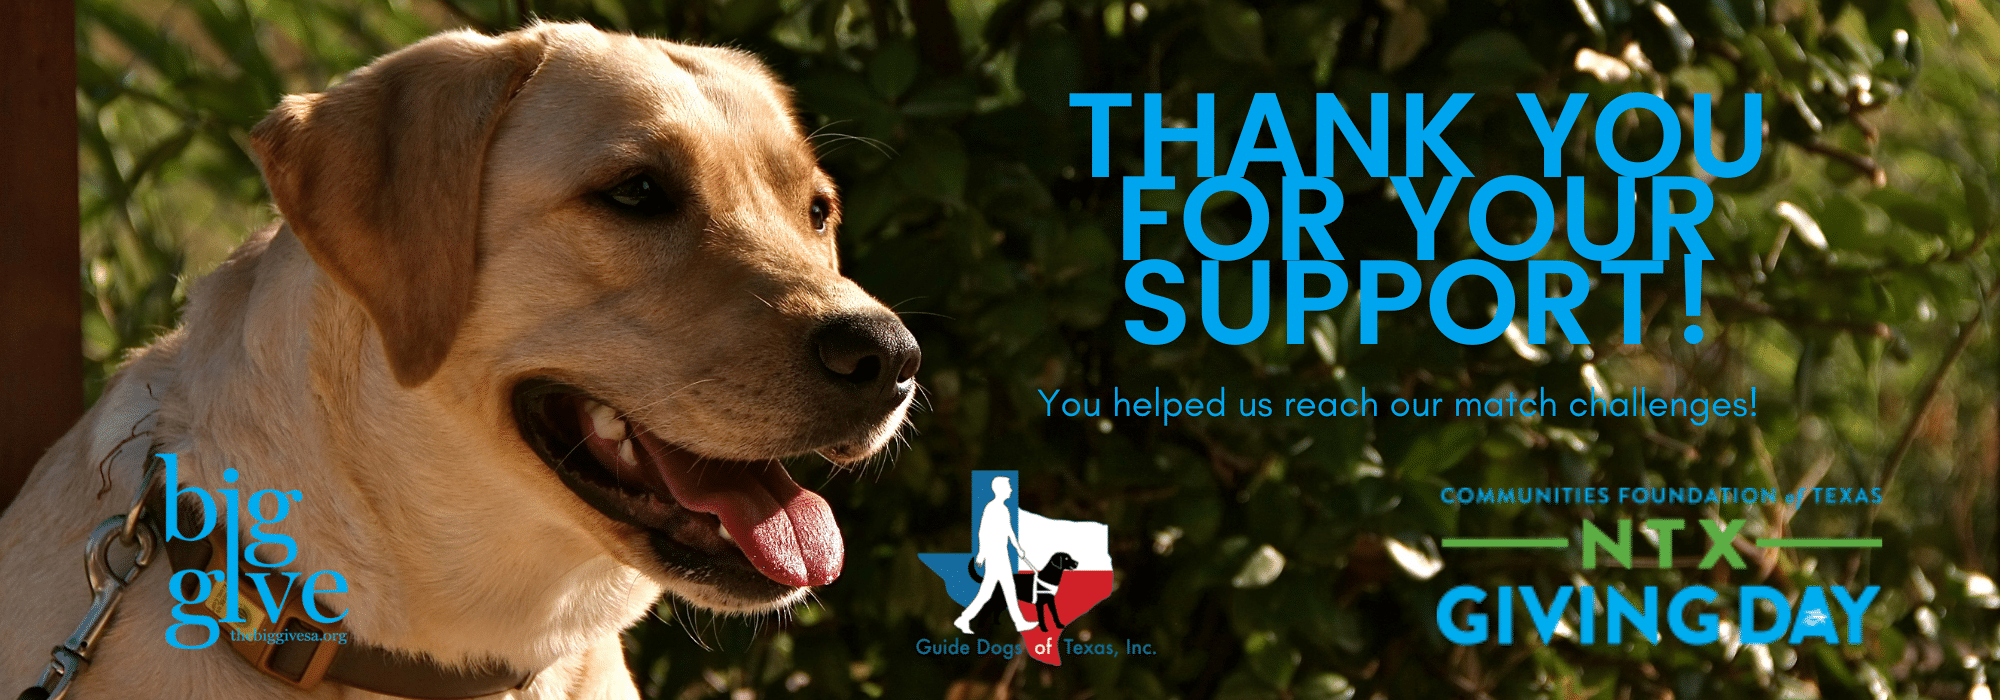 Thank you for your support! You helped us reach our match goal!